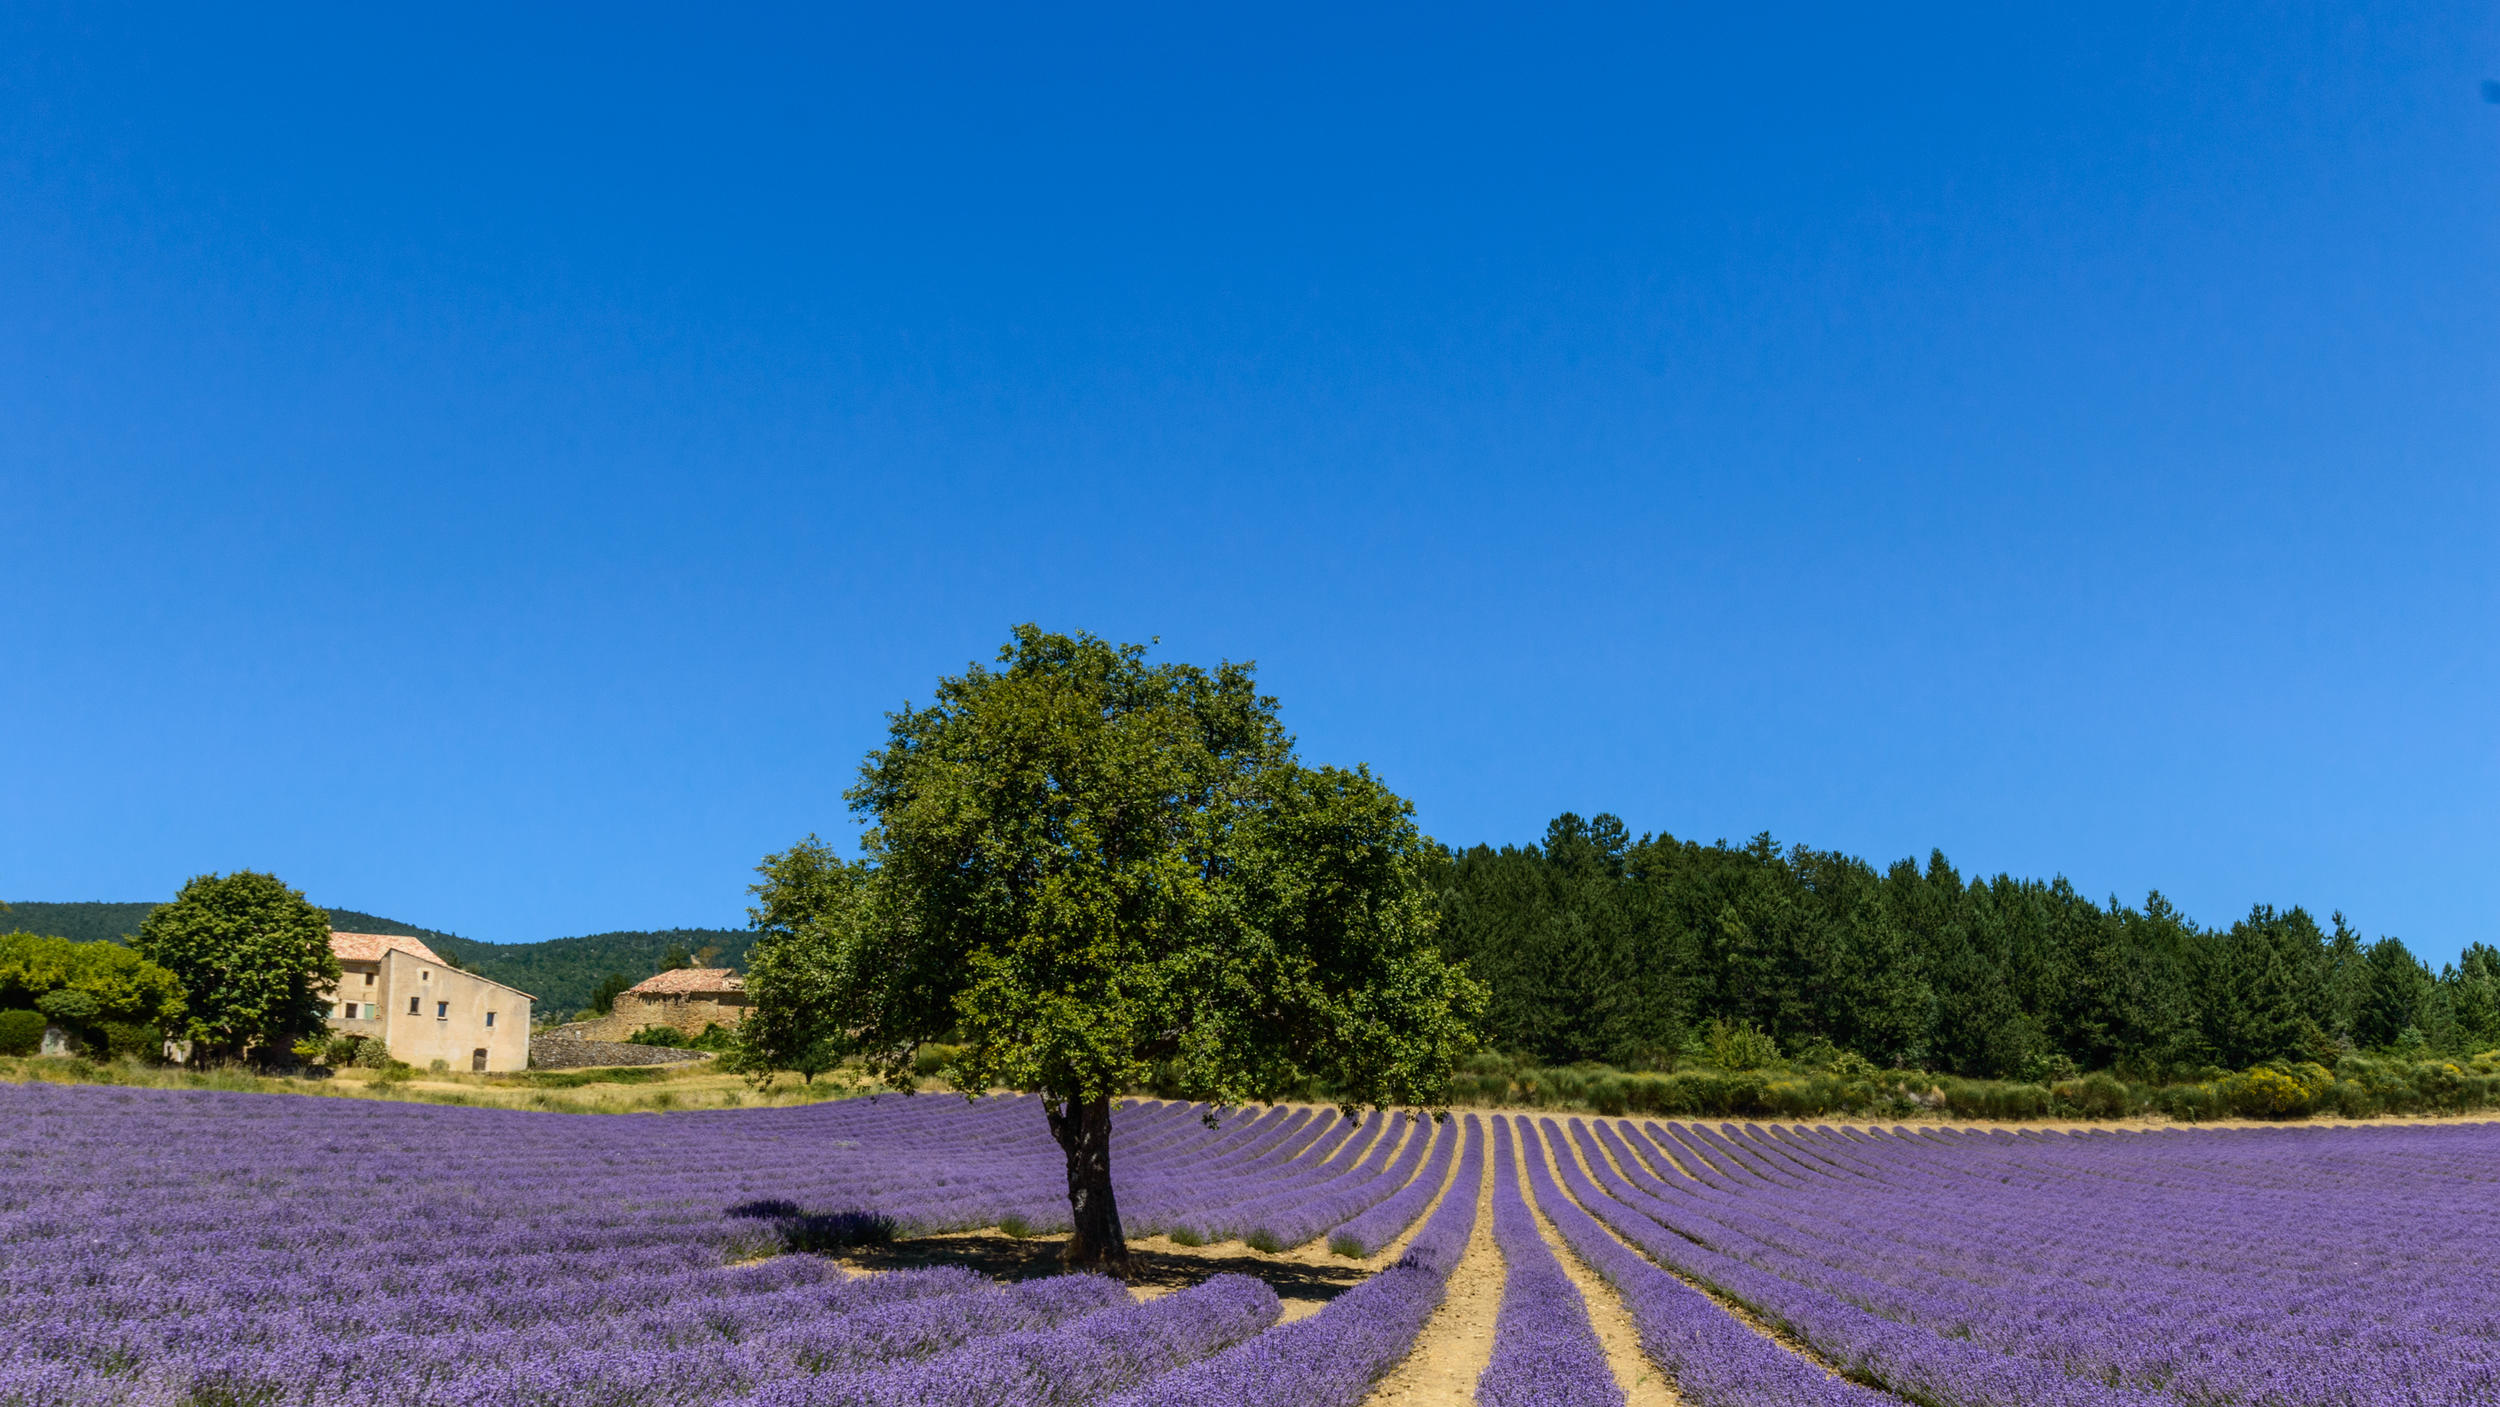 In lavender country